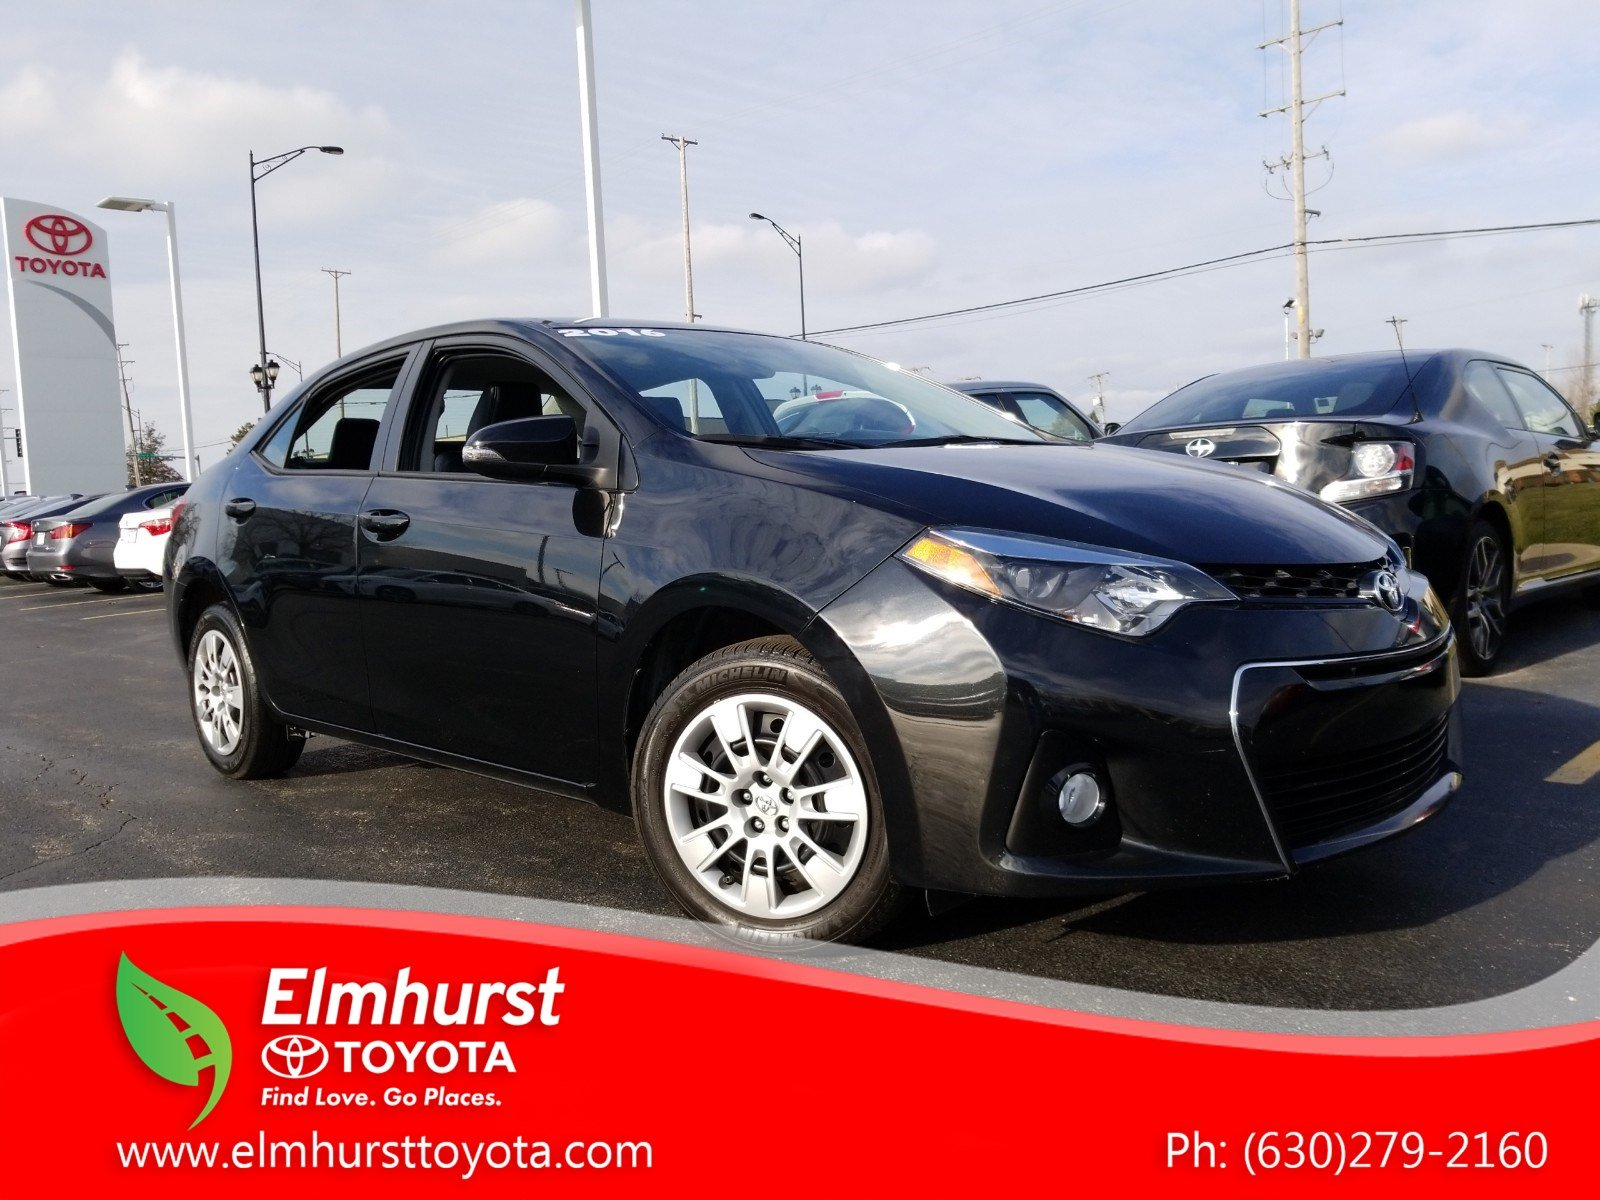 Pre Owned 2016 Toyota Corolla S 4D Sedan in Elmhurst 8862P